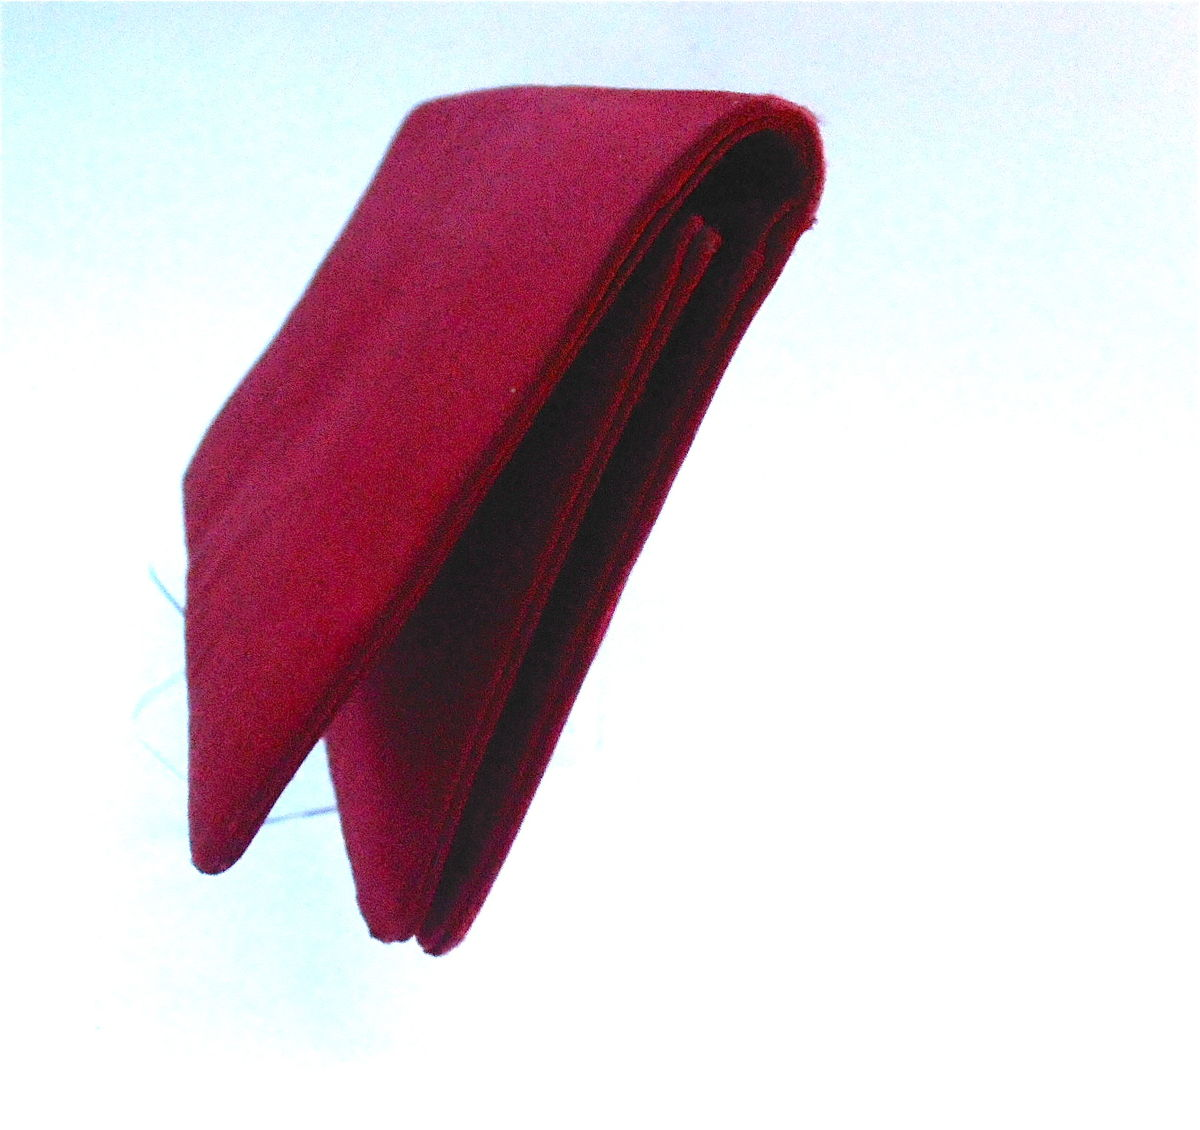 Vintage Dark Ruby Red Satin Clutch Purse Crimson Evening Handbag Formal Rectangular Bag Solid Color Crimson Bloody Cloth Fabric Midcentury  - product images  of